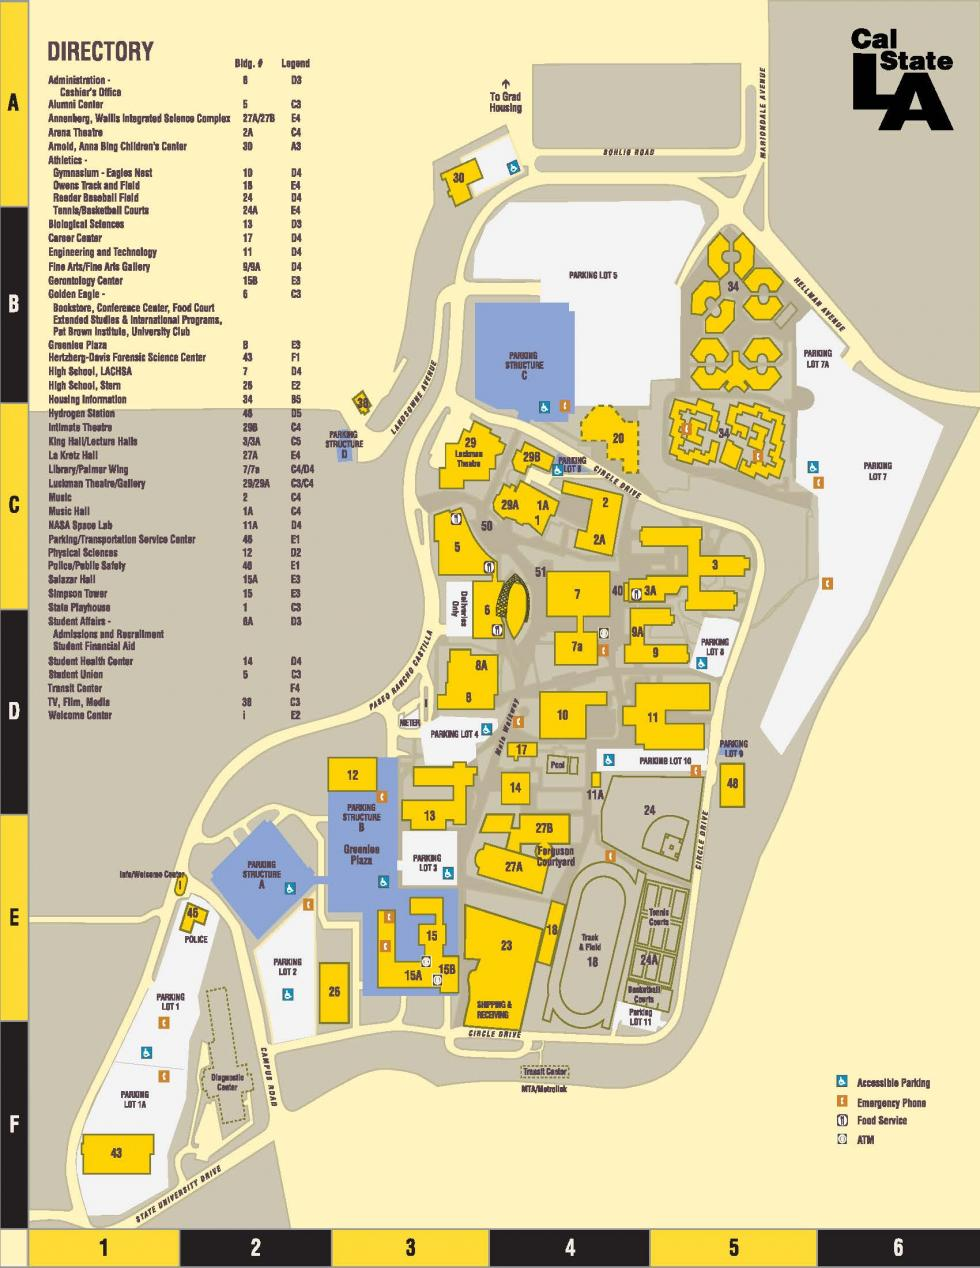 Parking/Directions/Campus Map | Cal State LA